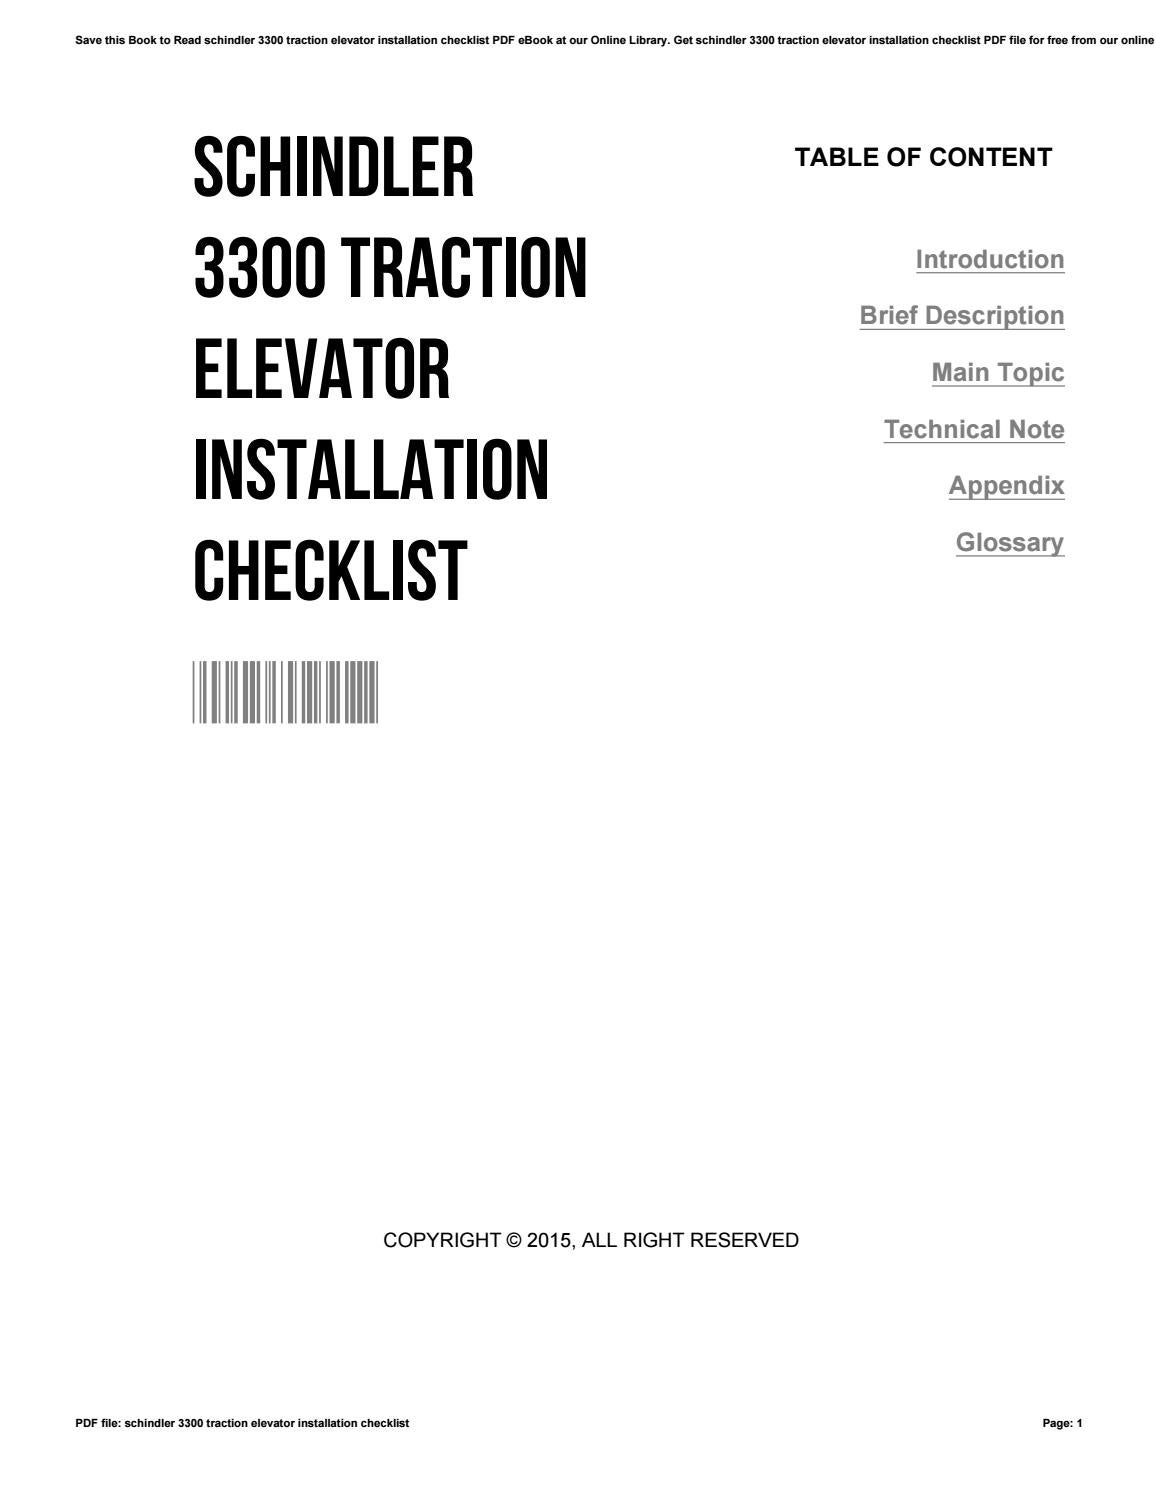 Schindler 3300 traction elevator installation checklist by